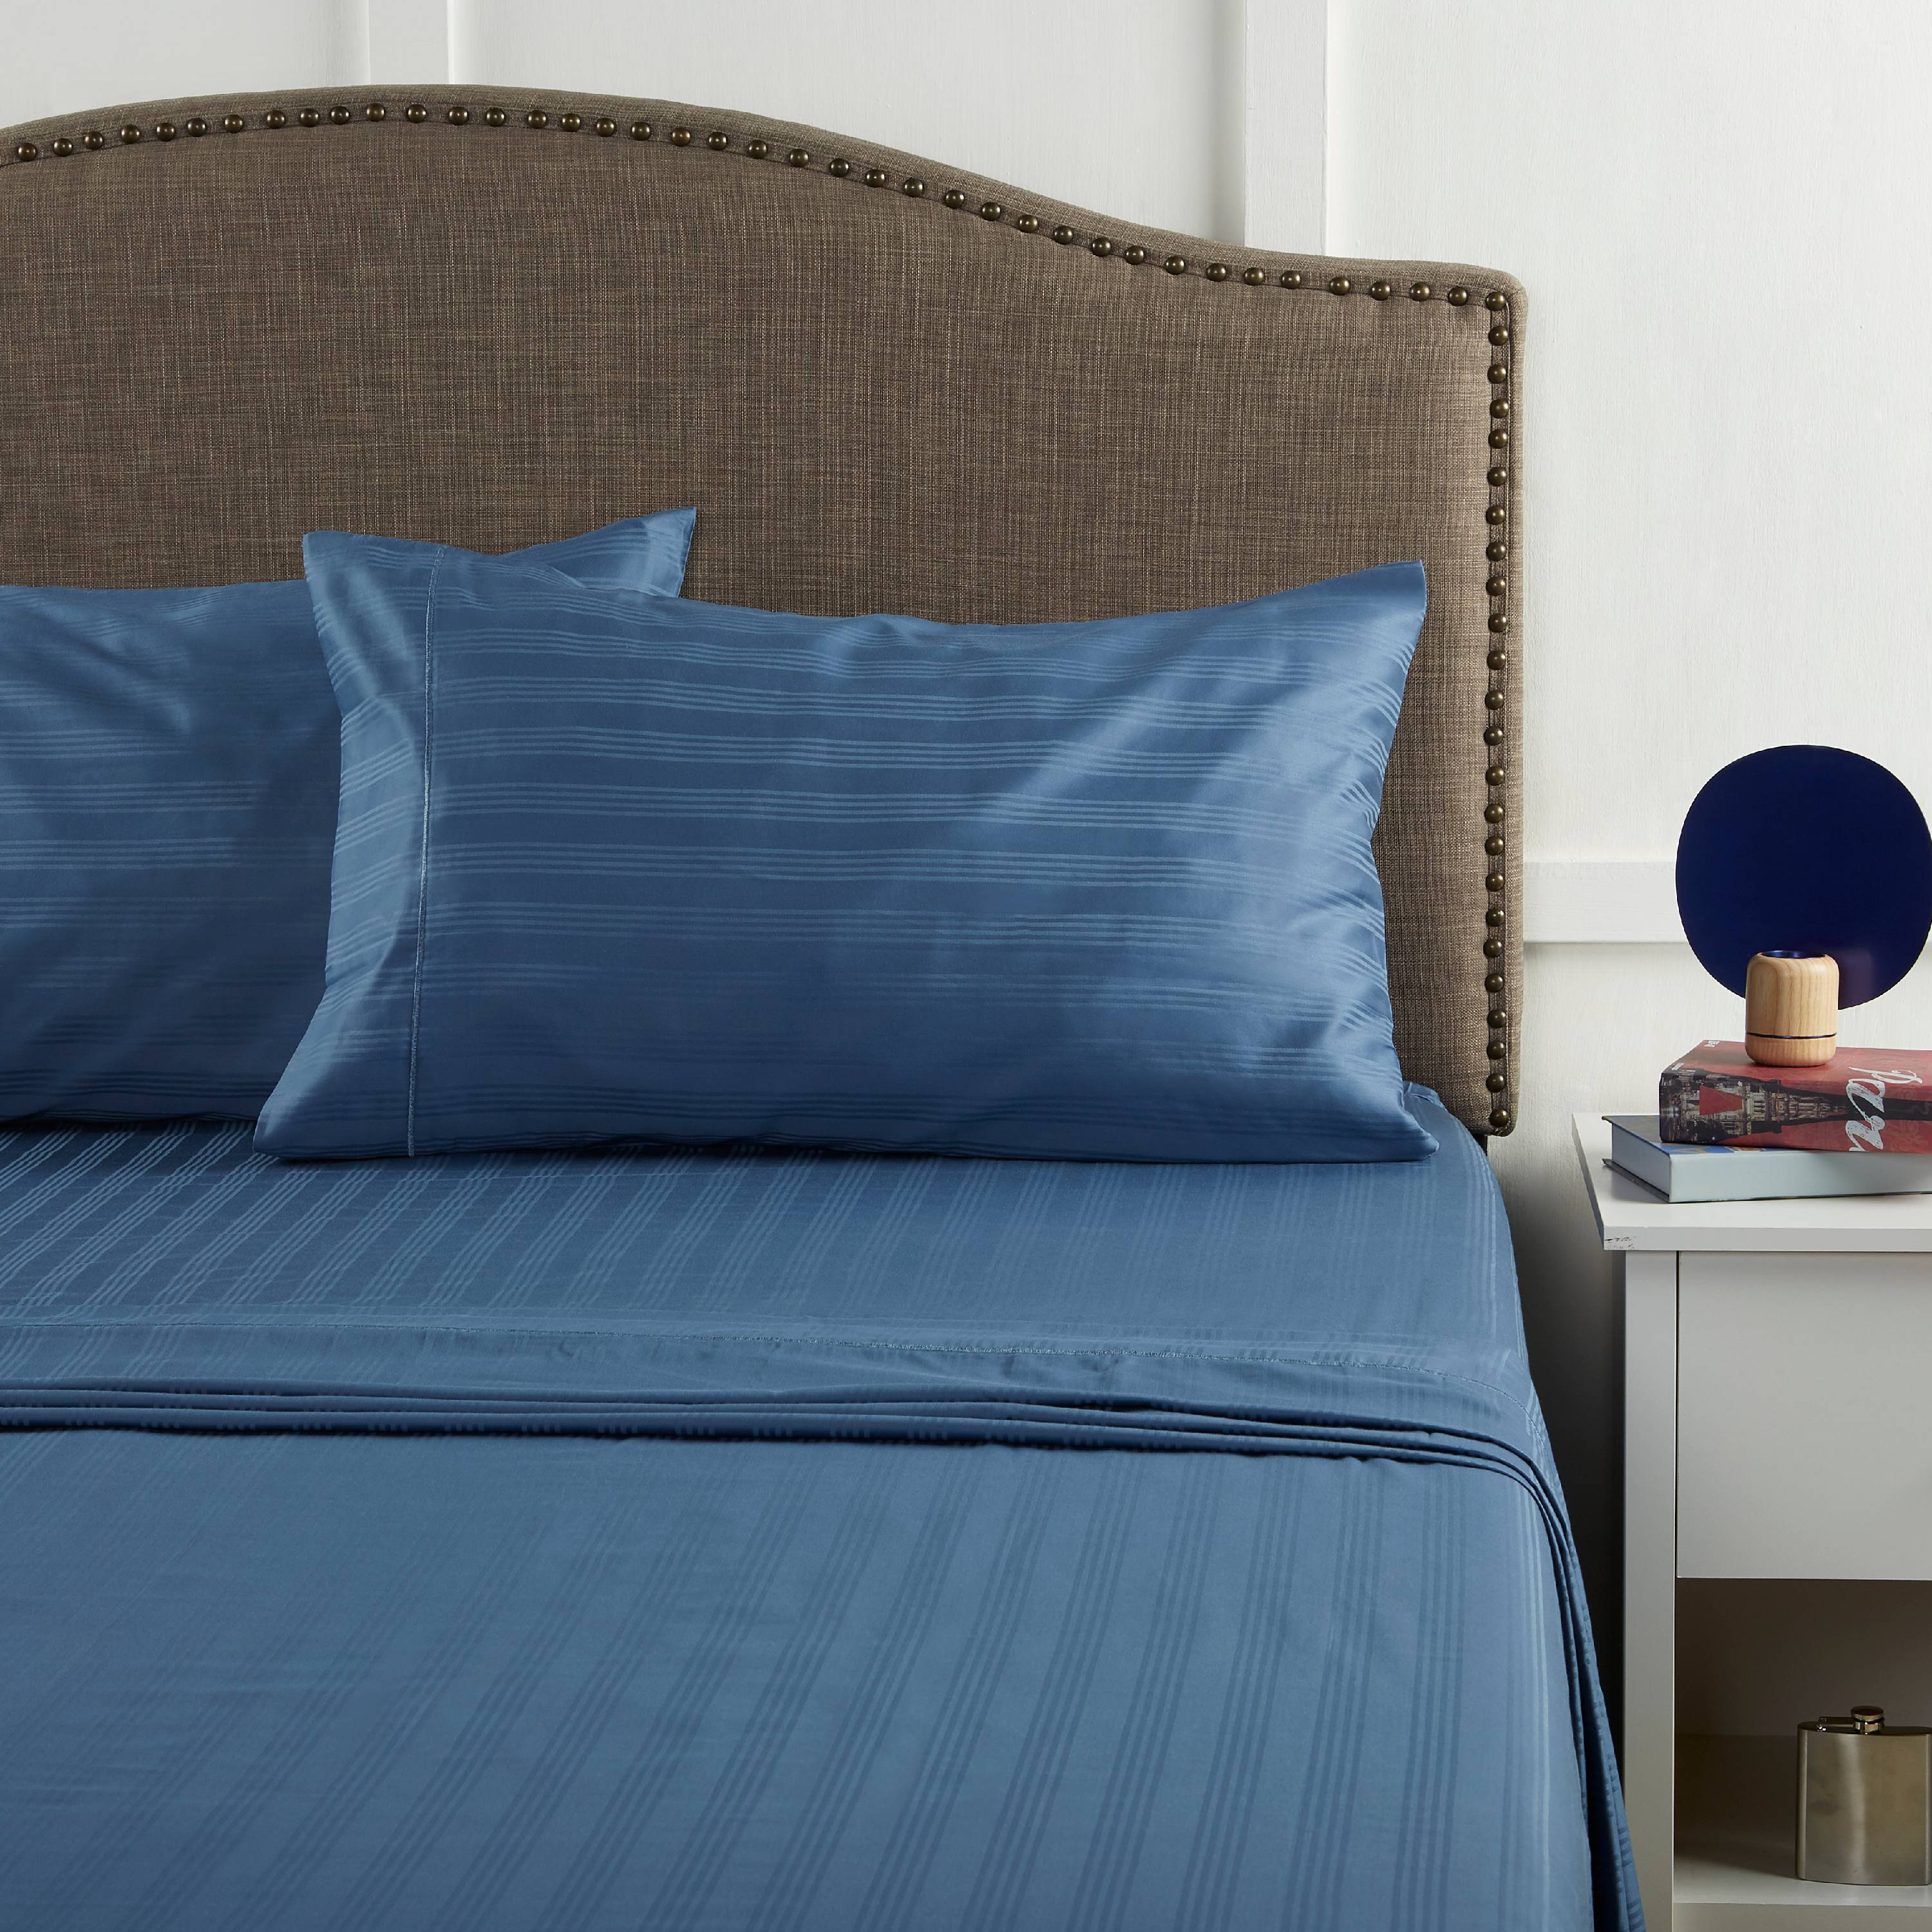 Better Home and Gardens 400-Thread-Count Damask Performance Queen Sheet Set, Blue